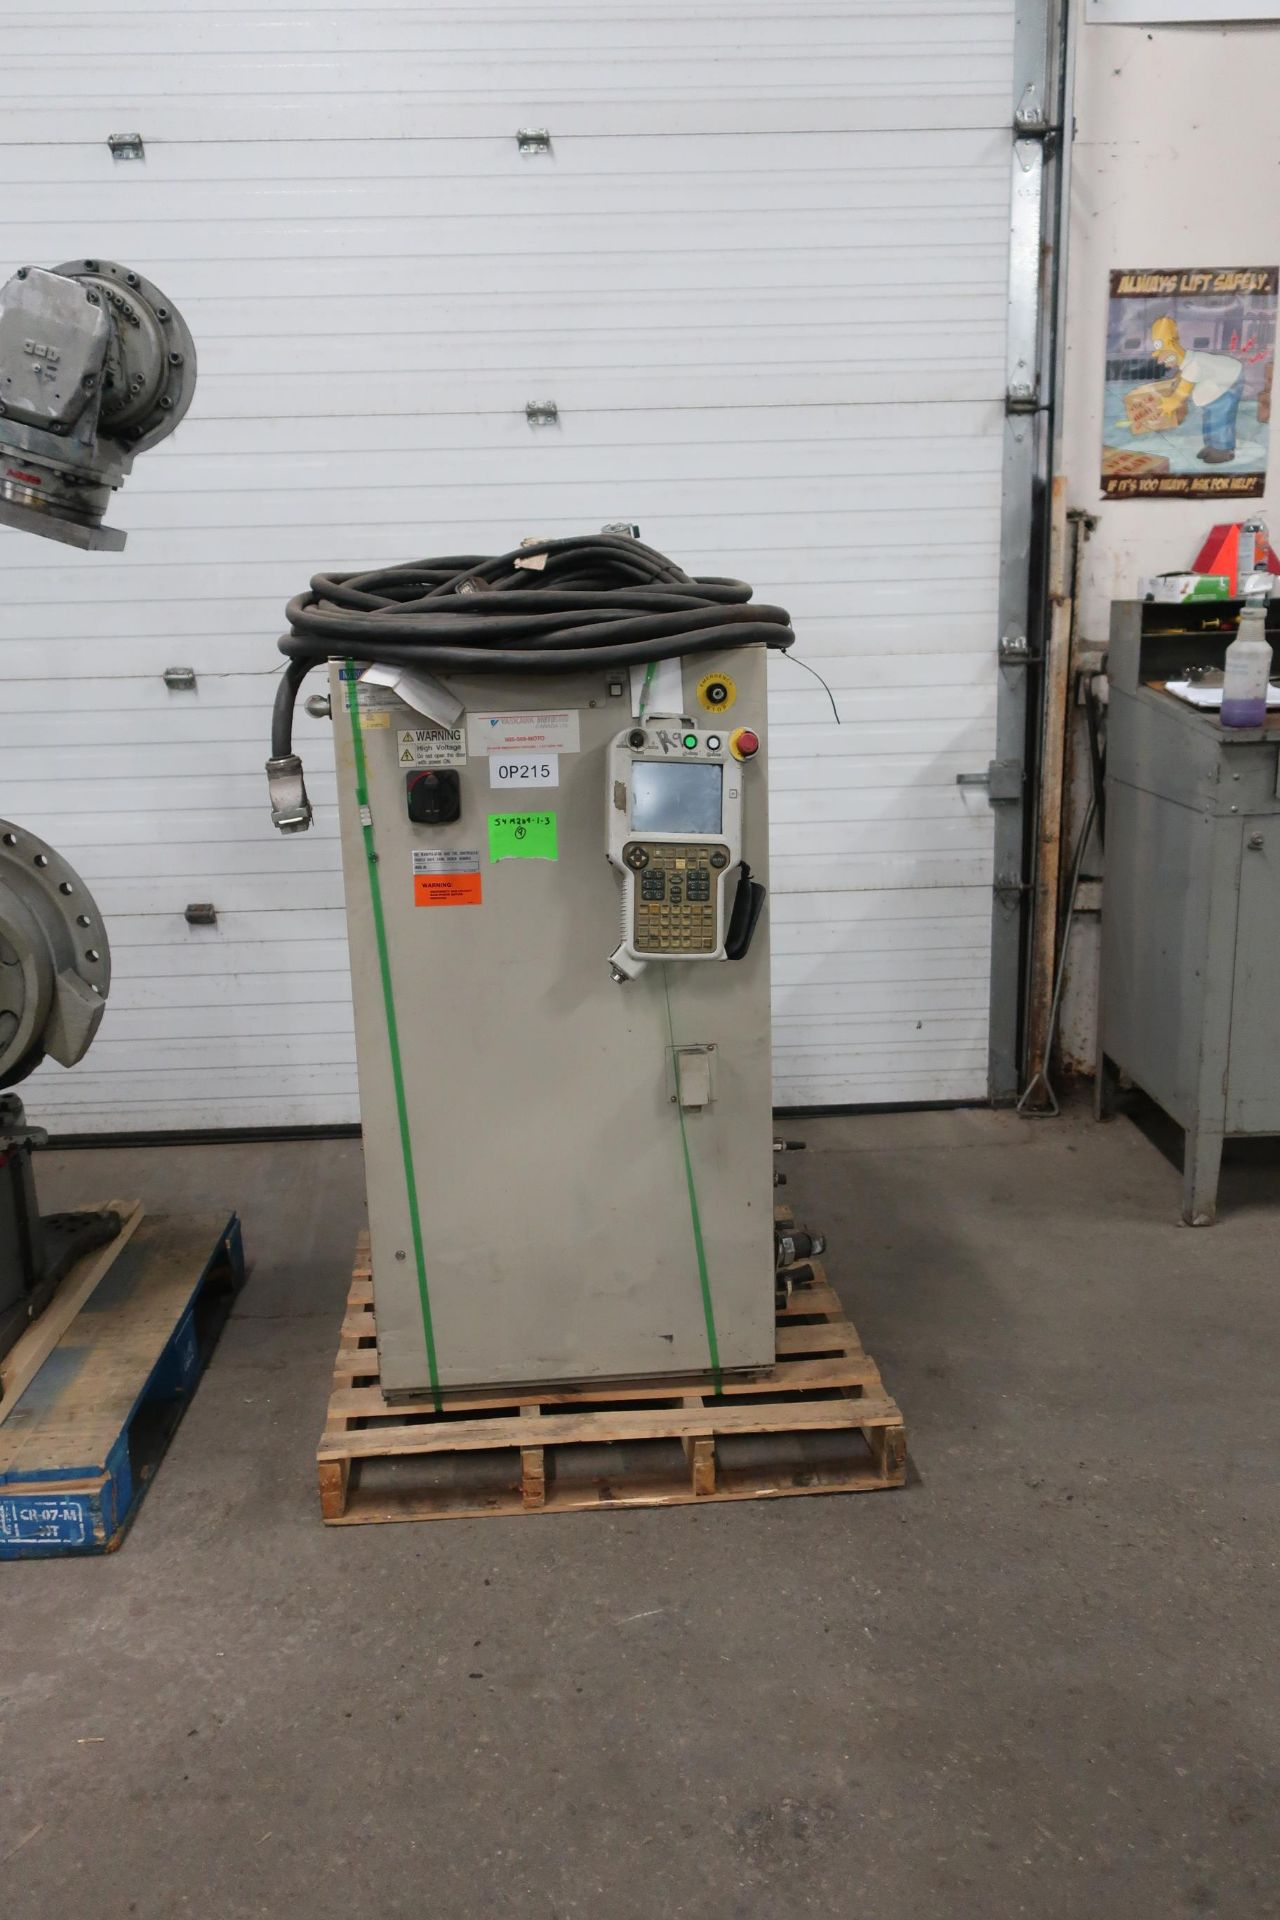 2008 Motoman ES200N Robot 200kg Capacity with Controller COMPLETE with Teach Pendant, Cables, LOW - Image 2 of 3